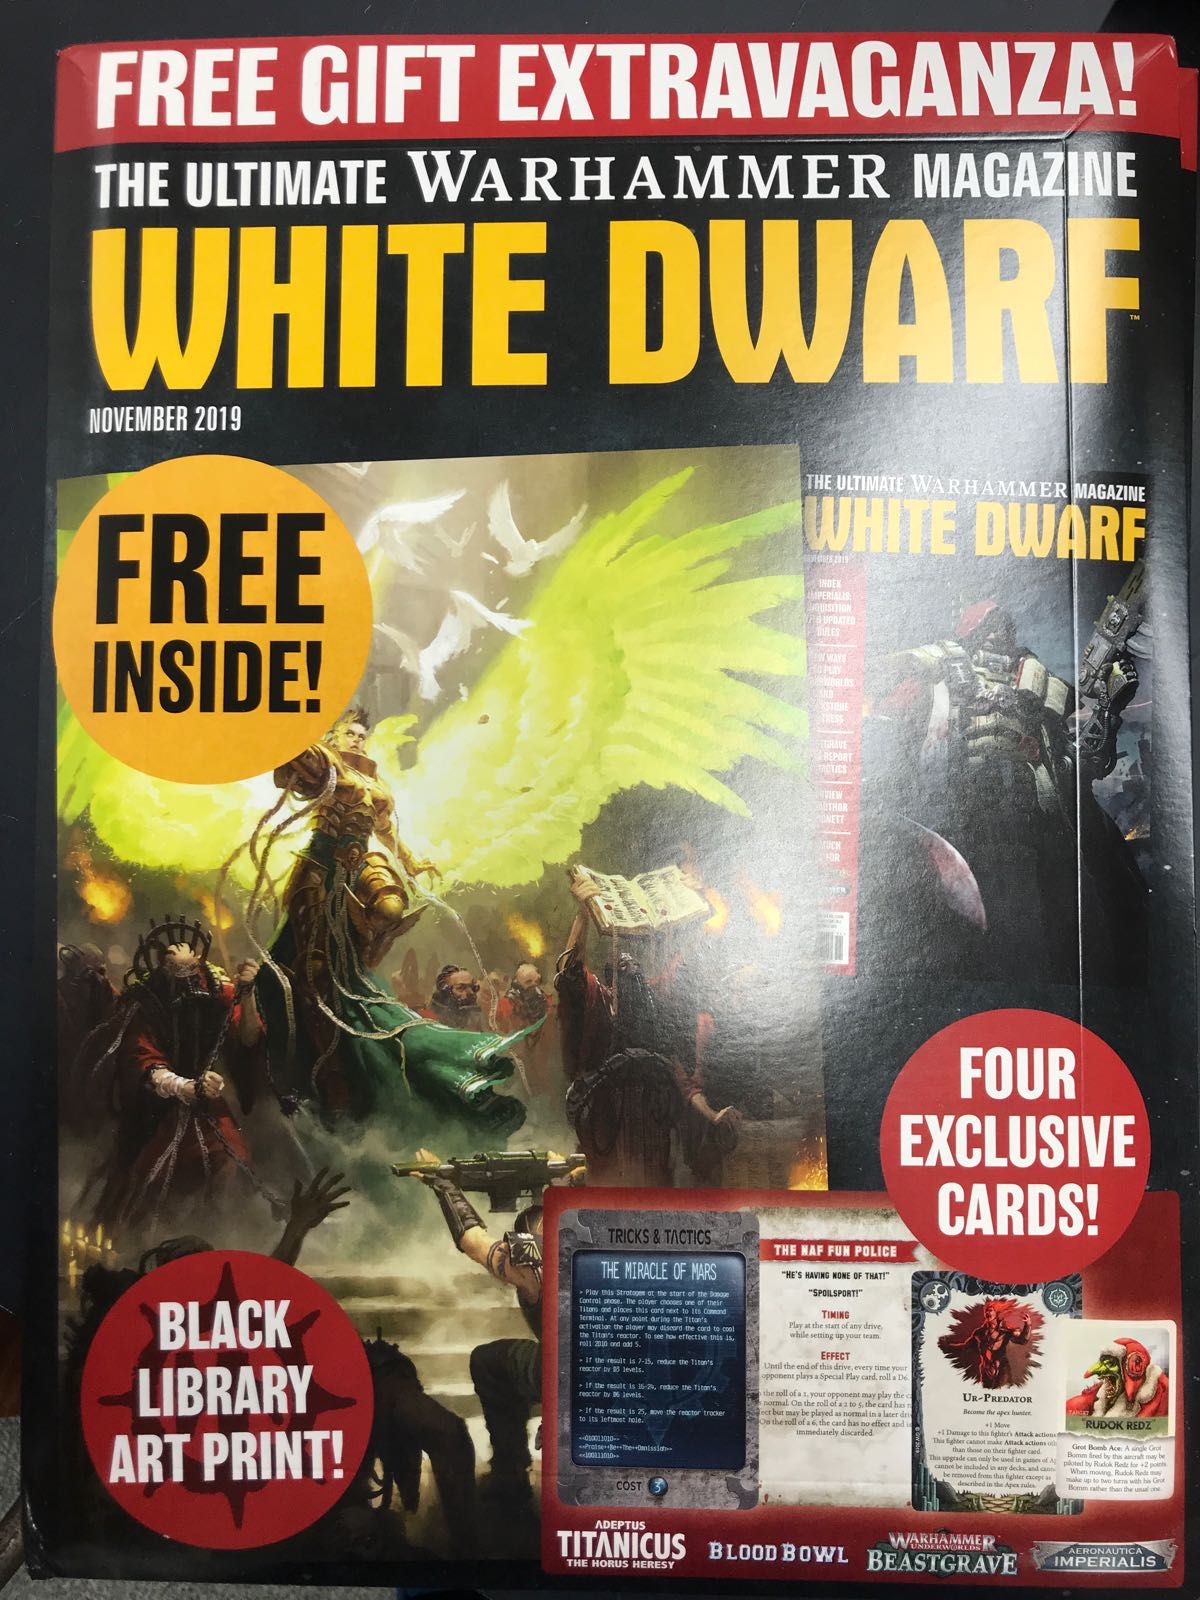 WHITE DWARF: NOVEMBER 2019